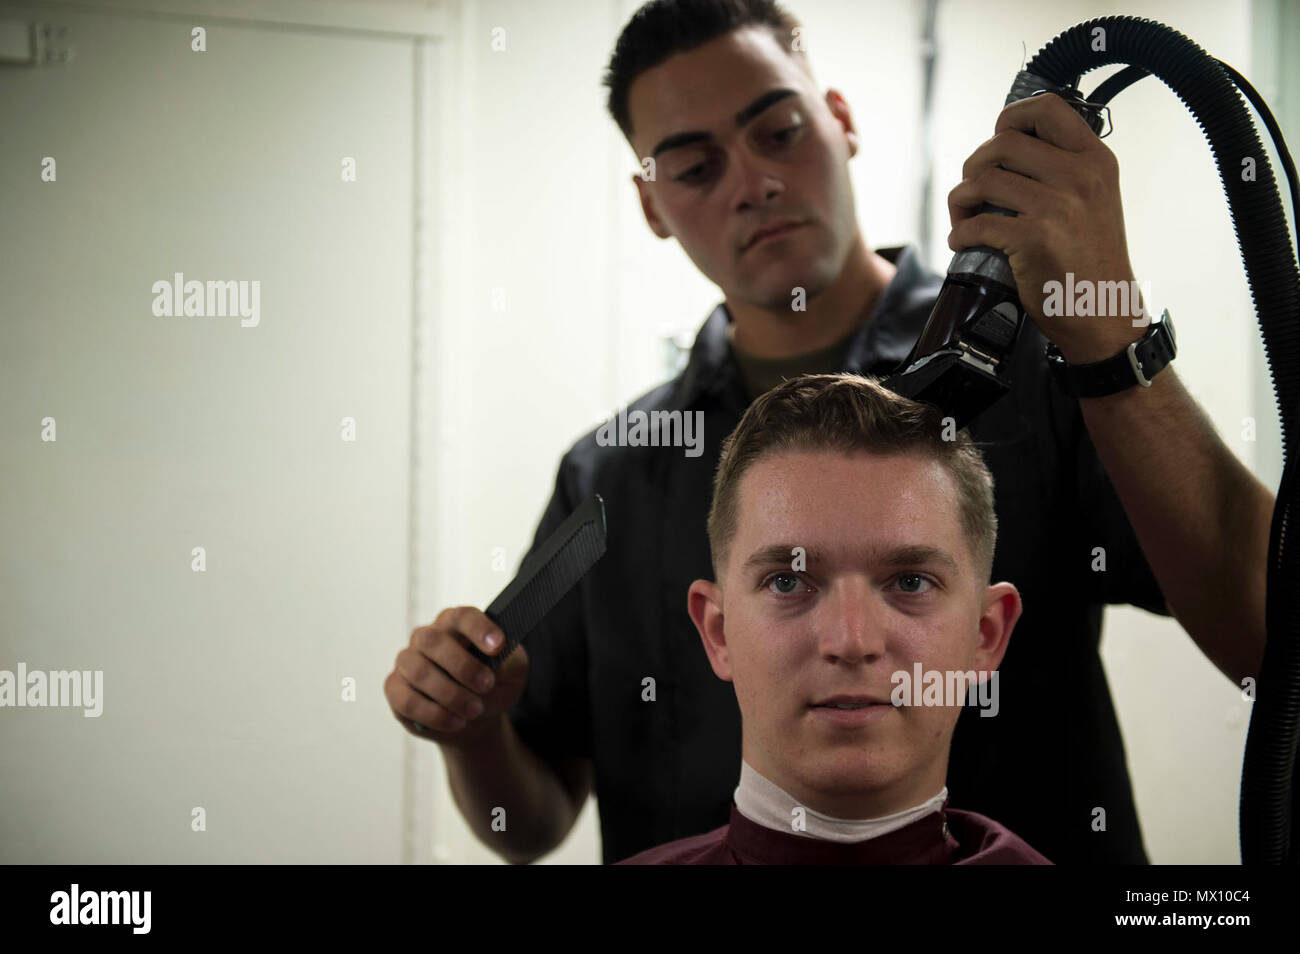 Ships Barber Shop Stock Photos Ships Barber Shop Stock Images Alamy